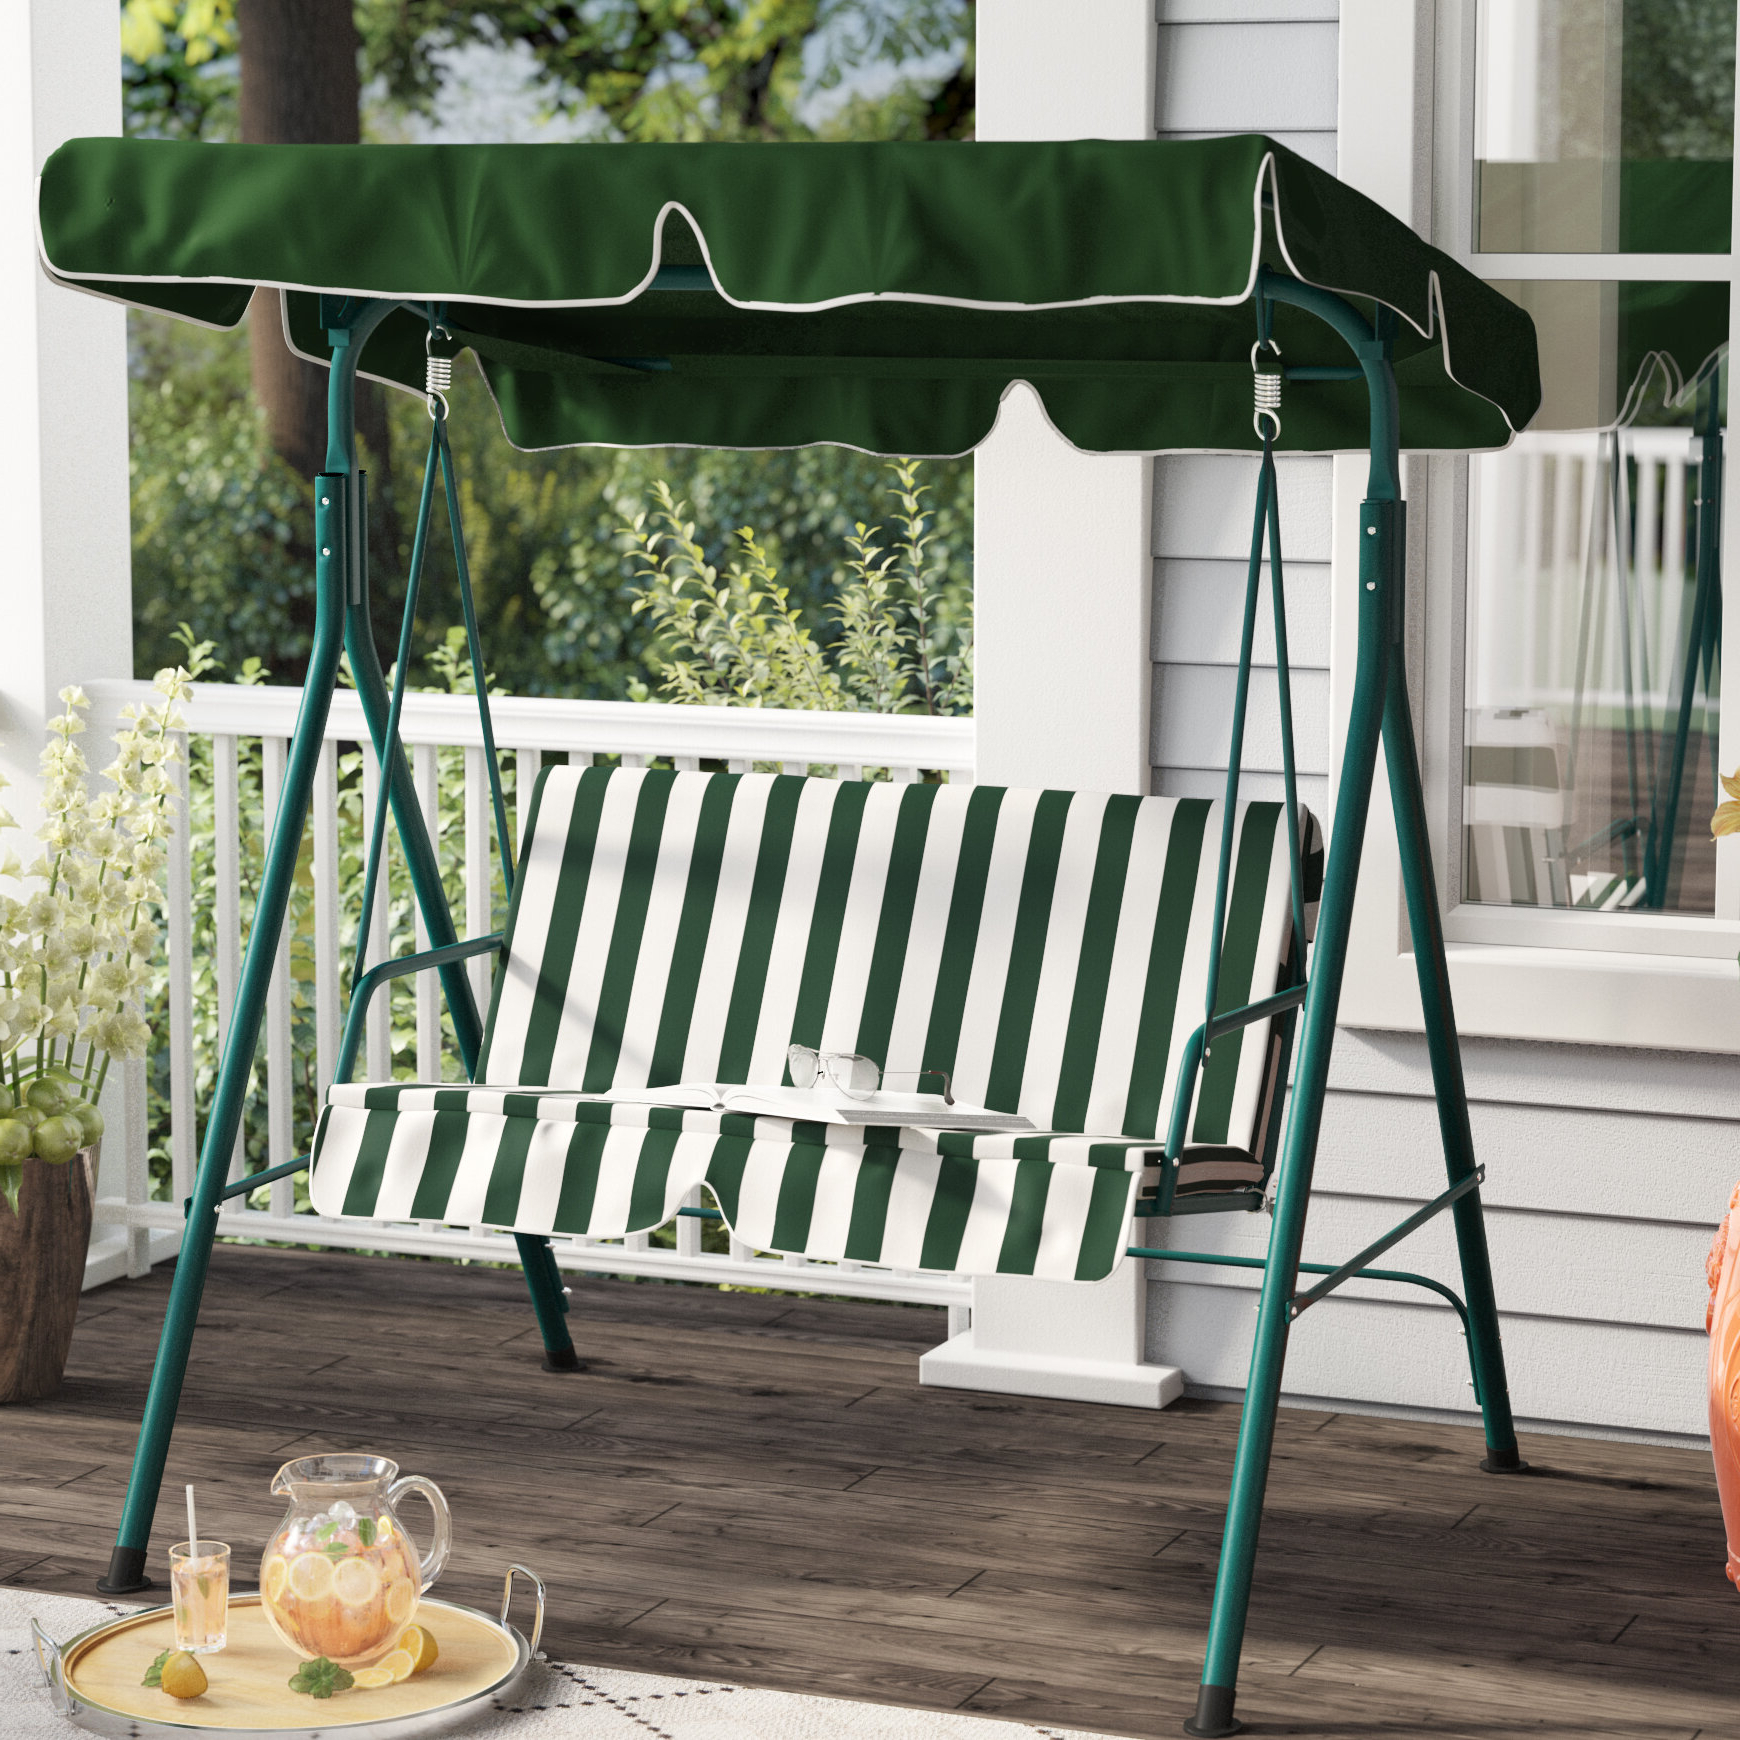 Fashionable Proothi Patio Loveseat Canopy Hammock Porch Swing With Stand With 2 Person Hammock Porch Swing Patio Outdoor Hanging Loveseat Canopy Glider Swings (View 22 of 25)